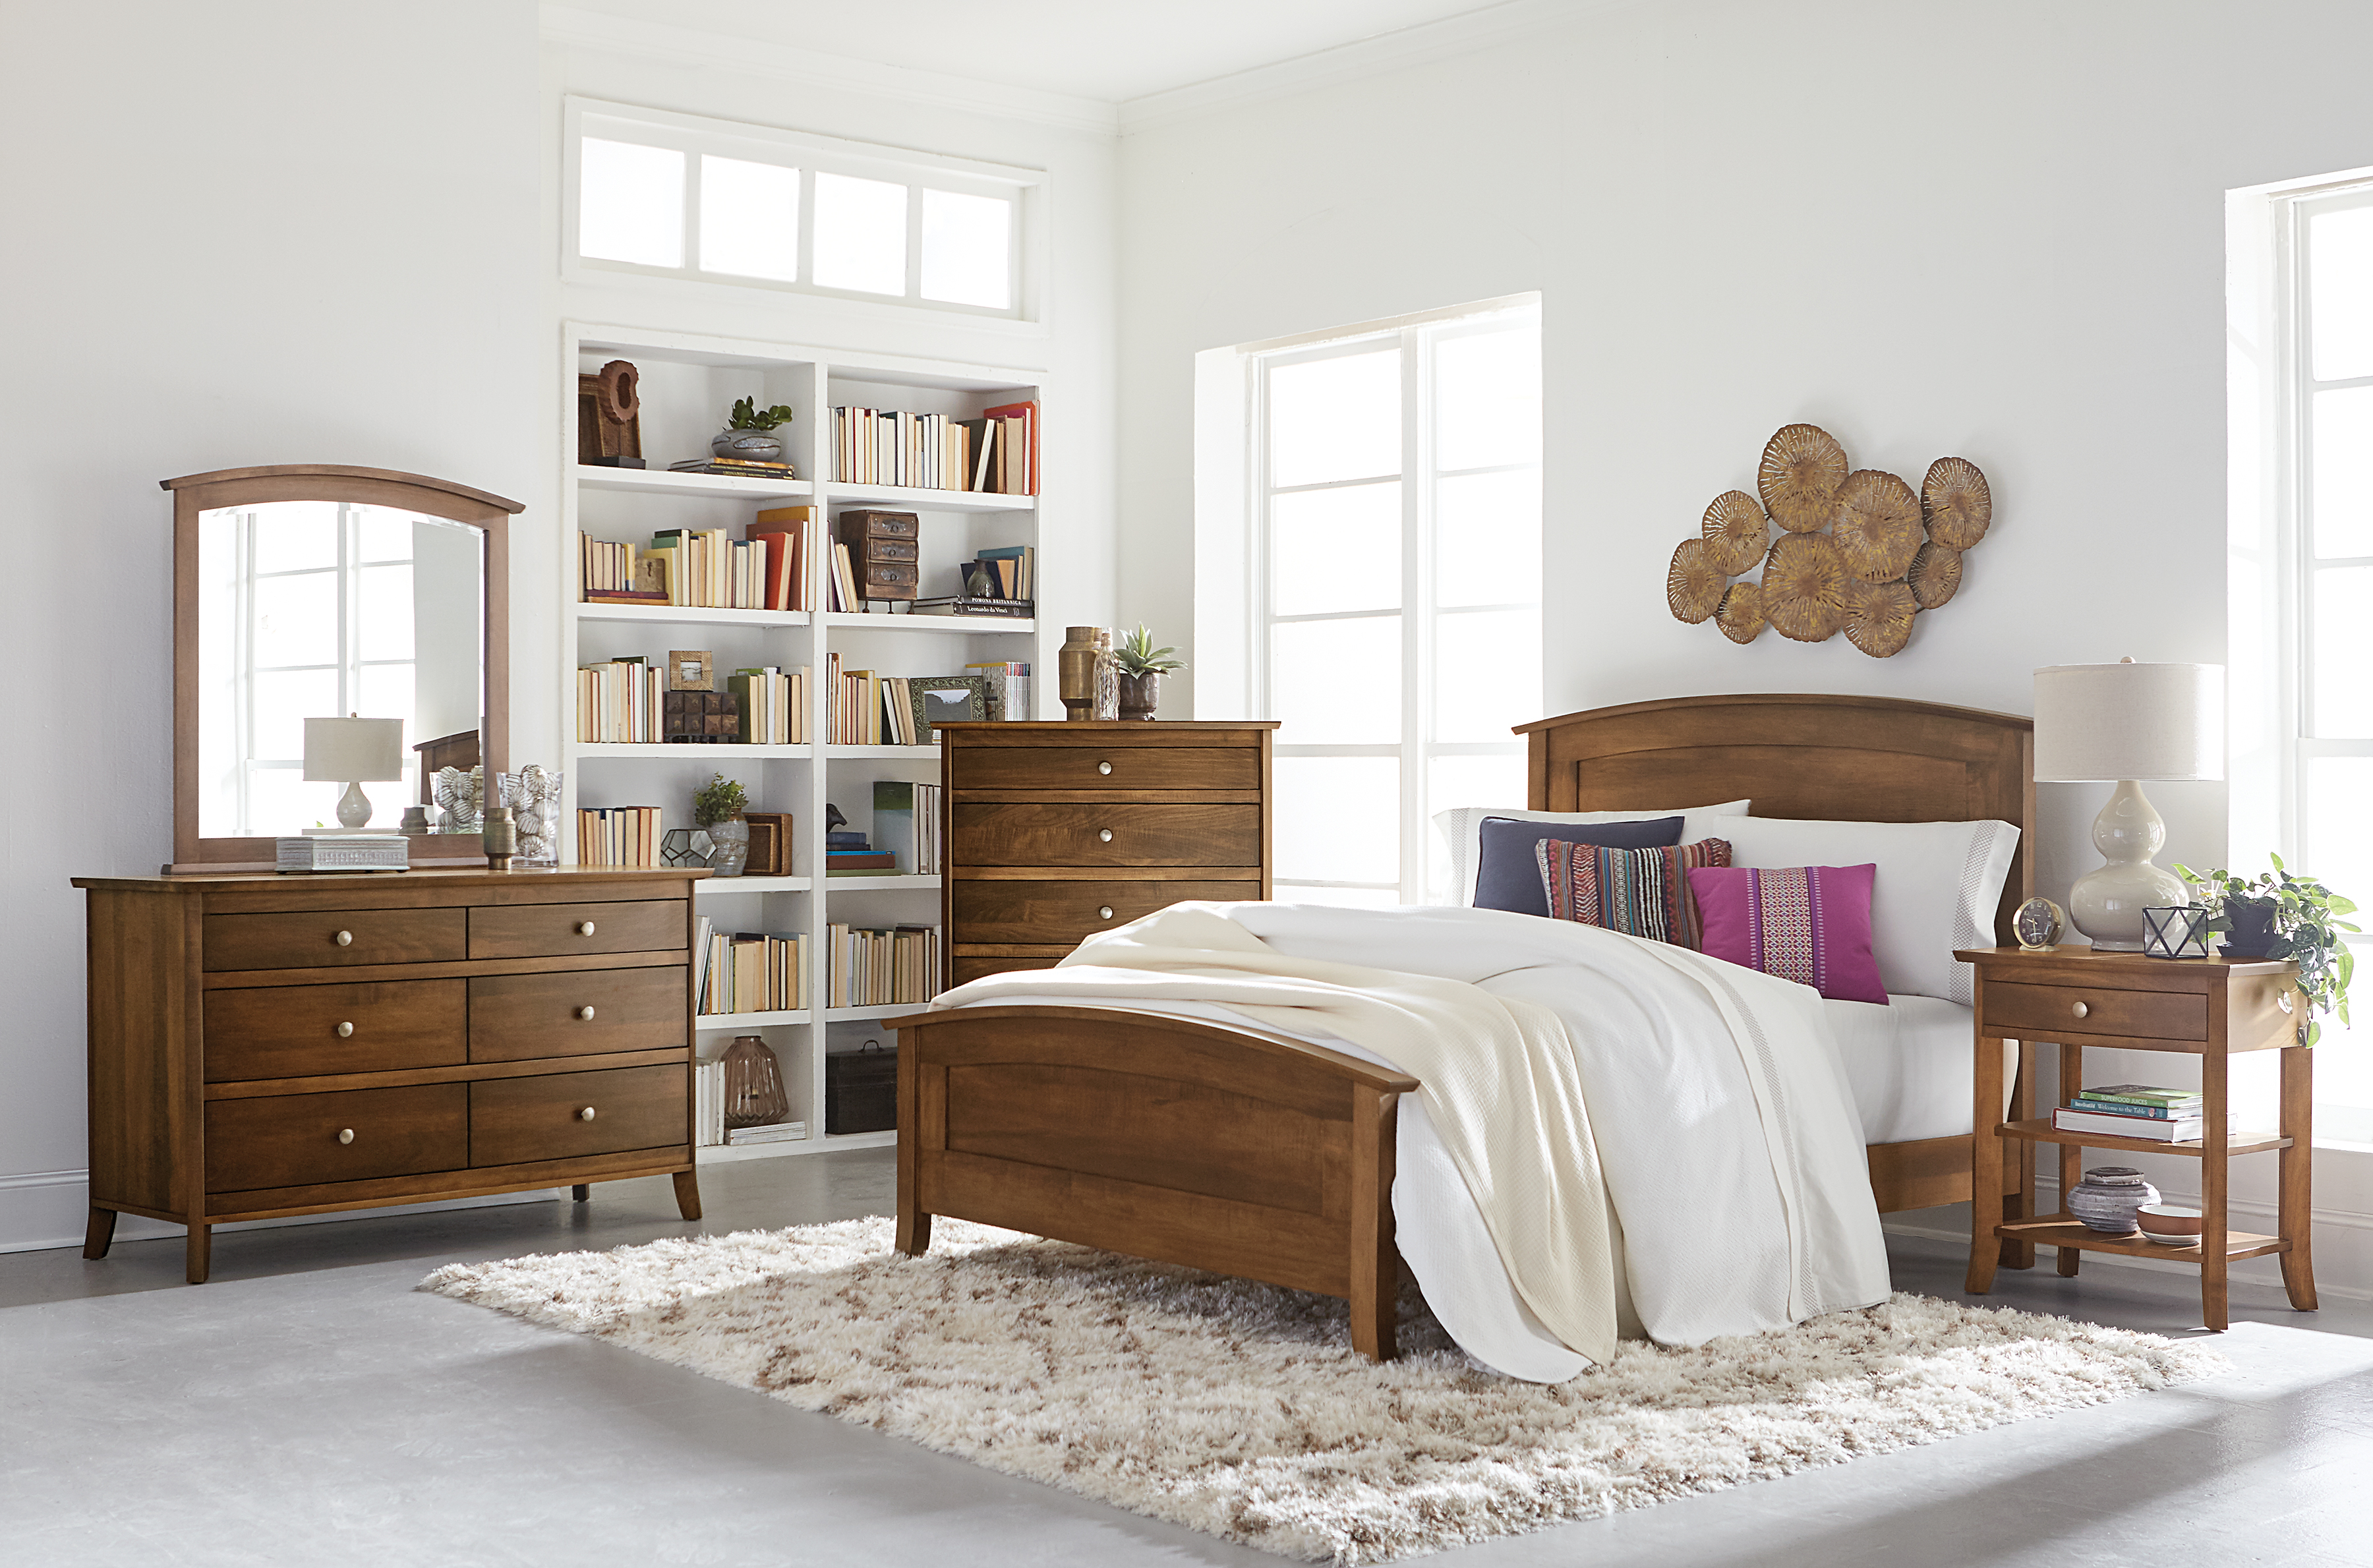 Laurel Bedroom Collection Featured in Brown Maple with Chocolate Spice stain at Mattie Lu